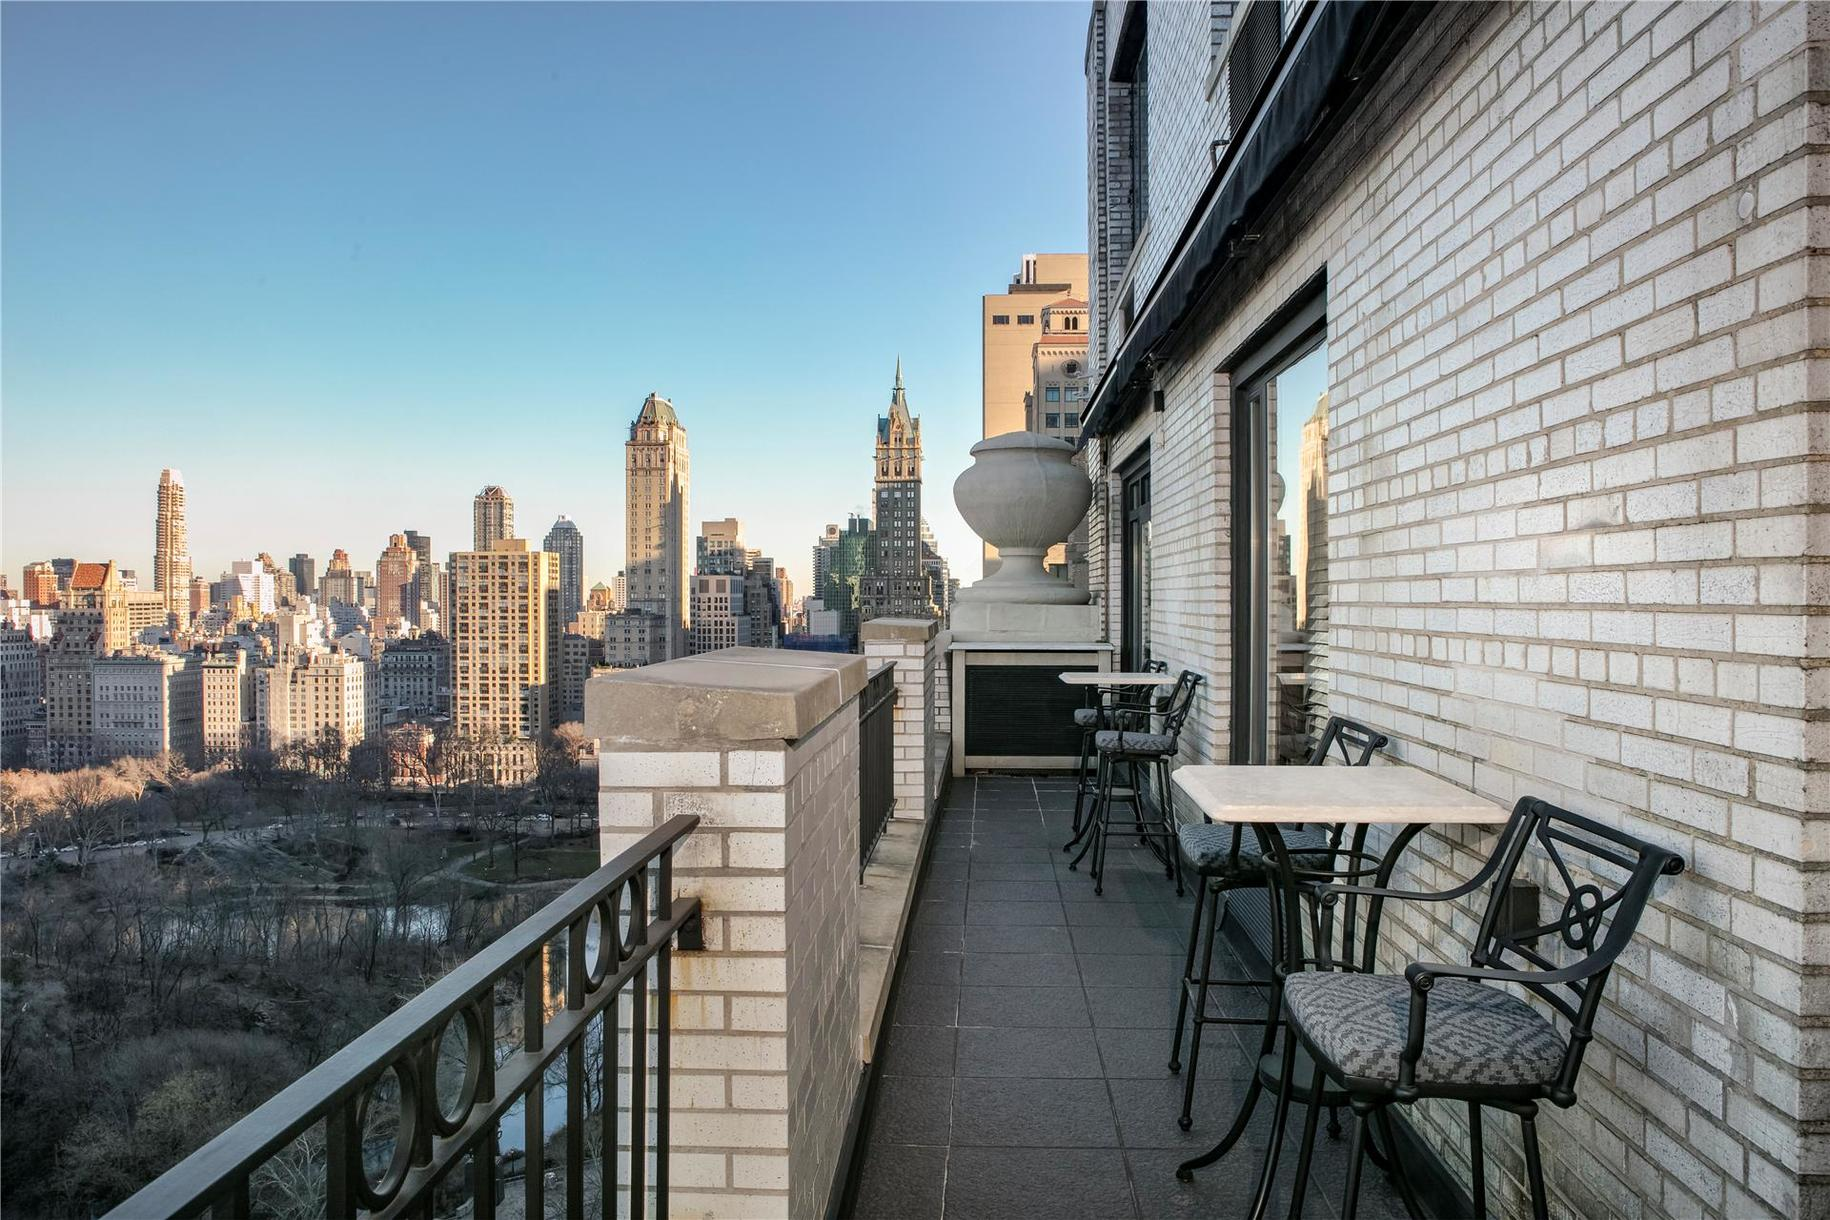 150 Central Park south, Celebrities, Celebrity Real Estate, Hampshire House, Pavarotti, Three tenors, Opera, Manhattan co-op for sale